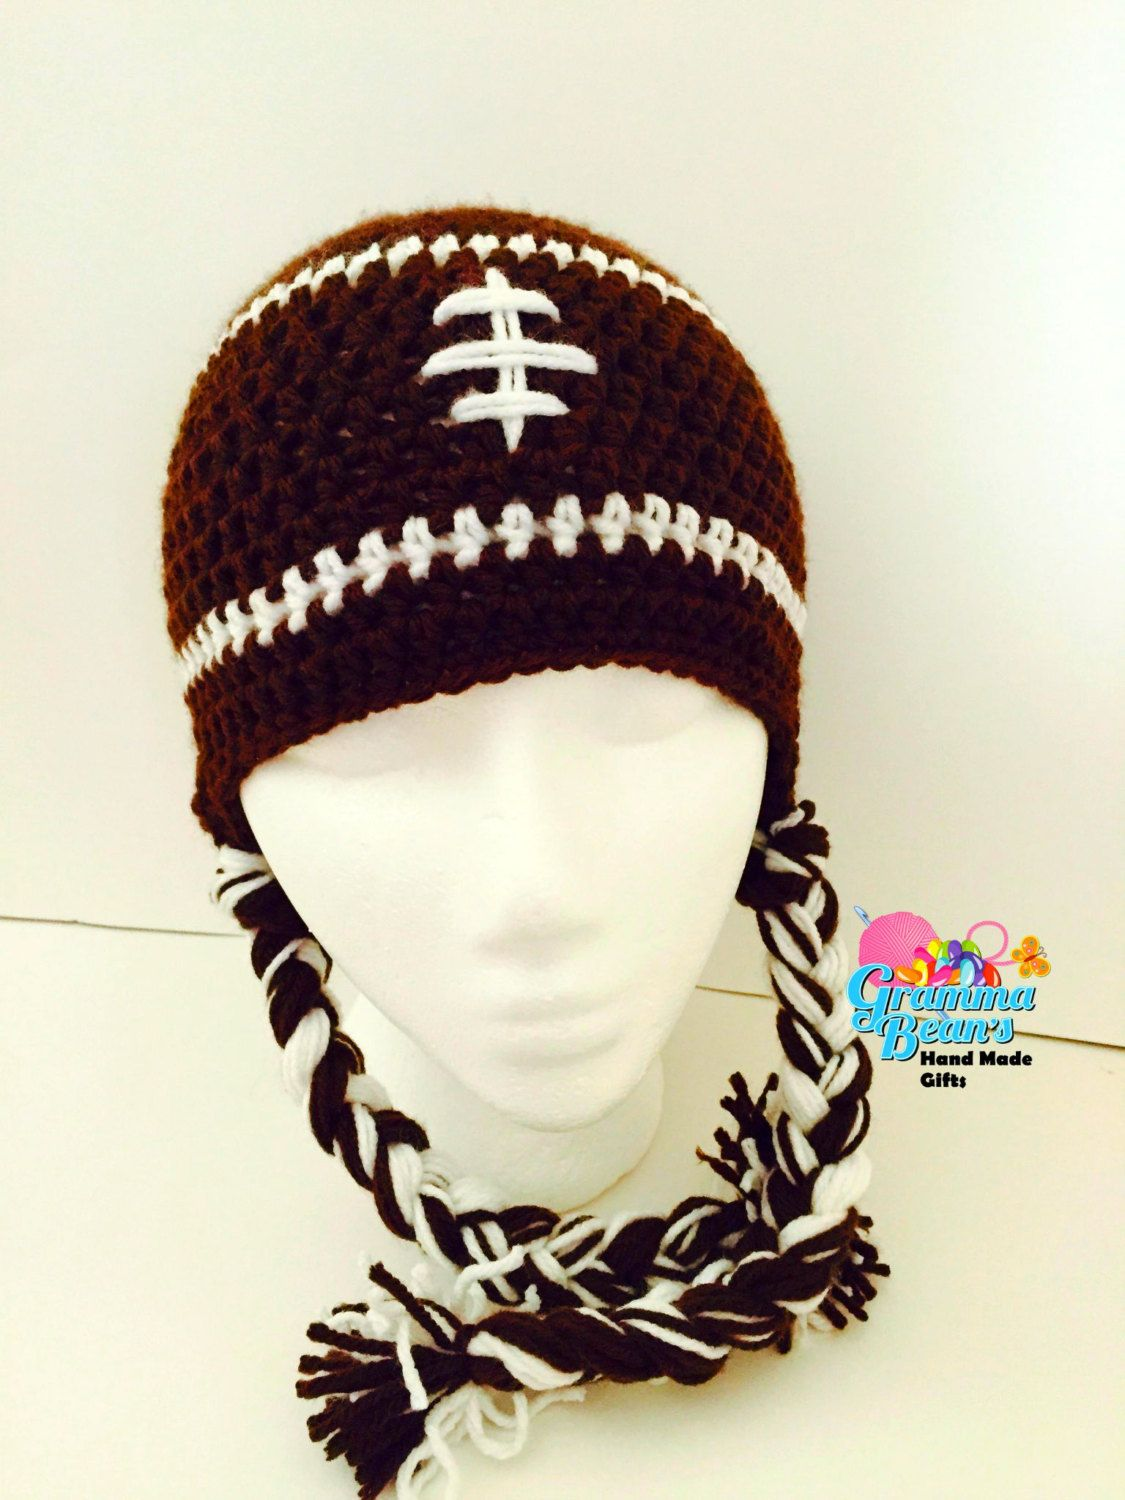 8265046d846 Fun  Football  Crochet  Beanie by grammabeans on Etsy  handmade  mmmakers   sports  fall  teams  babies  Kids  adults